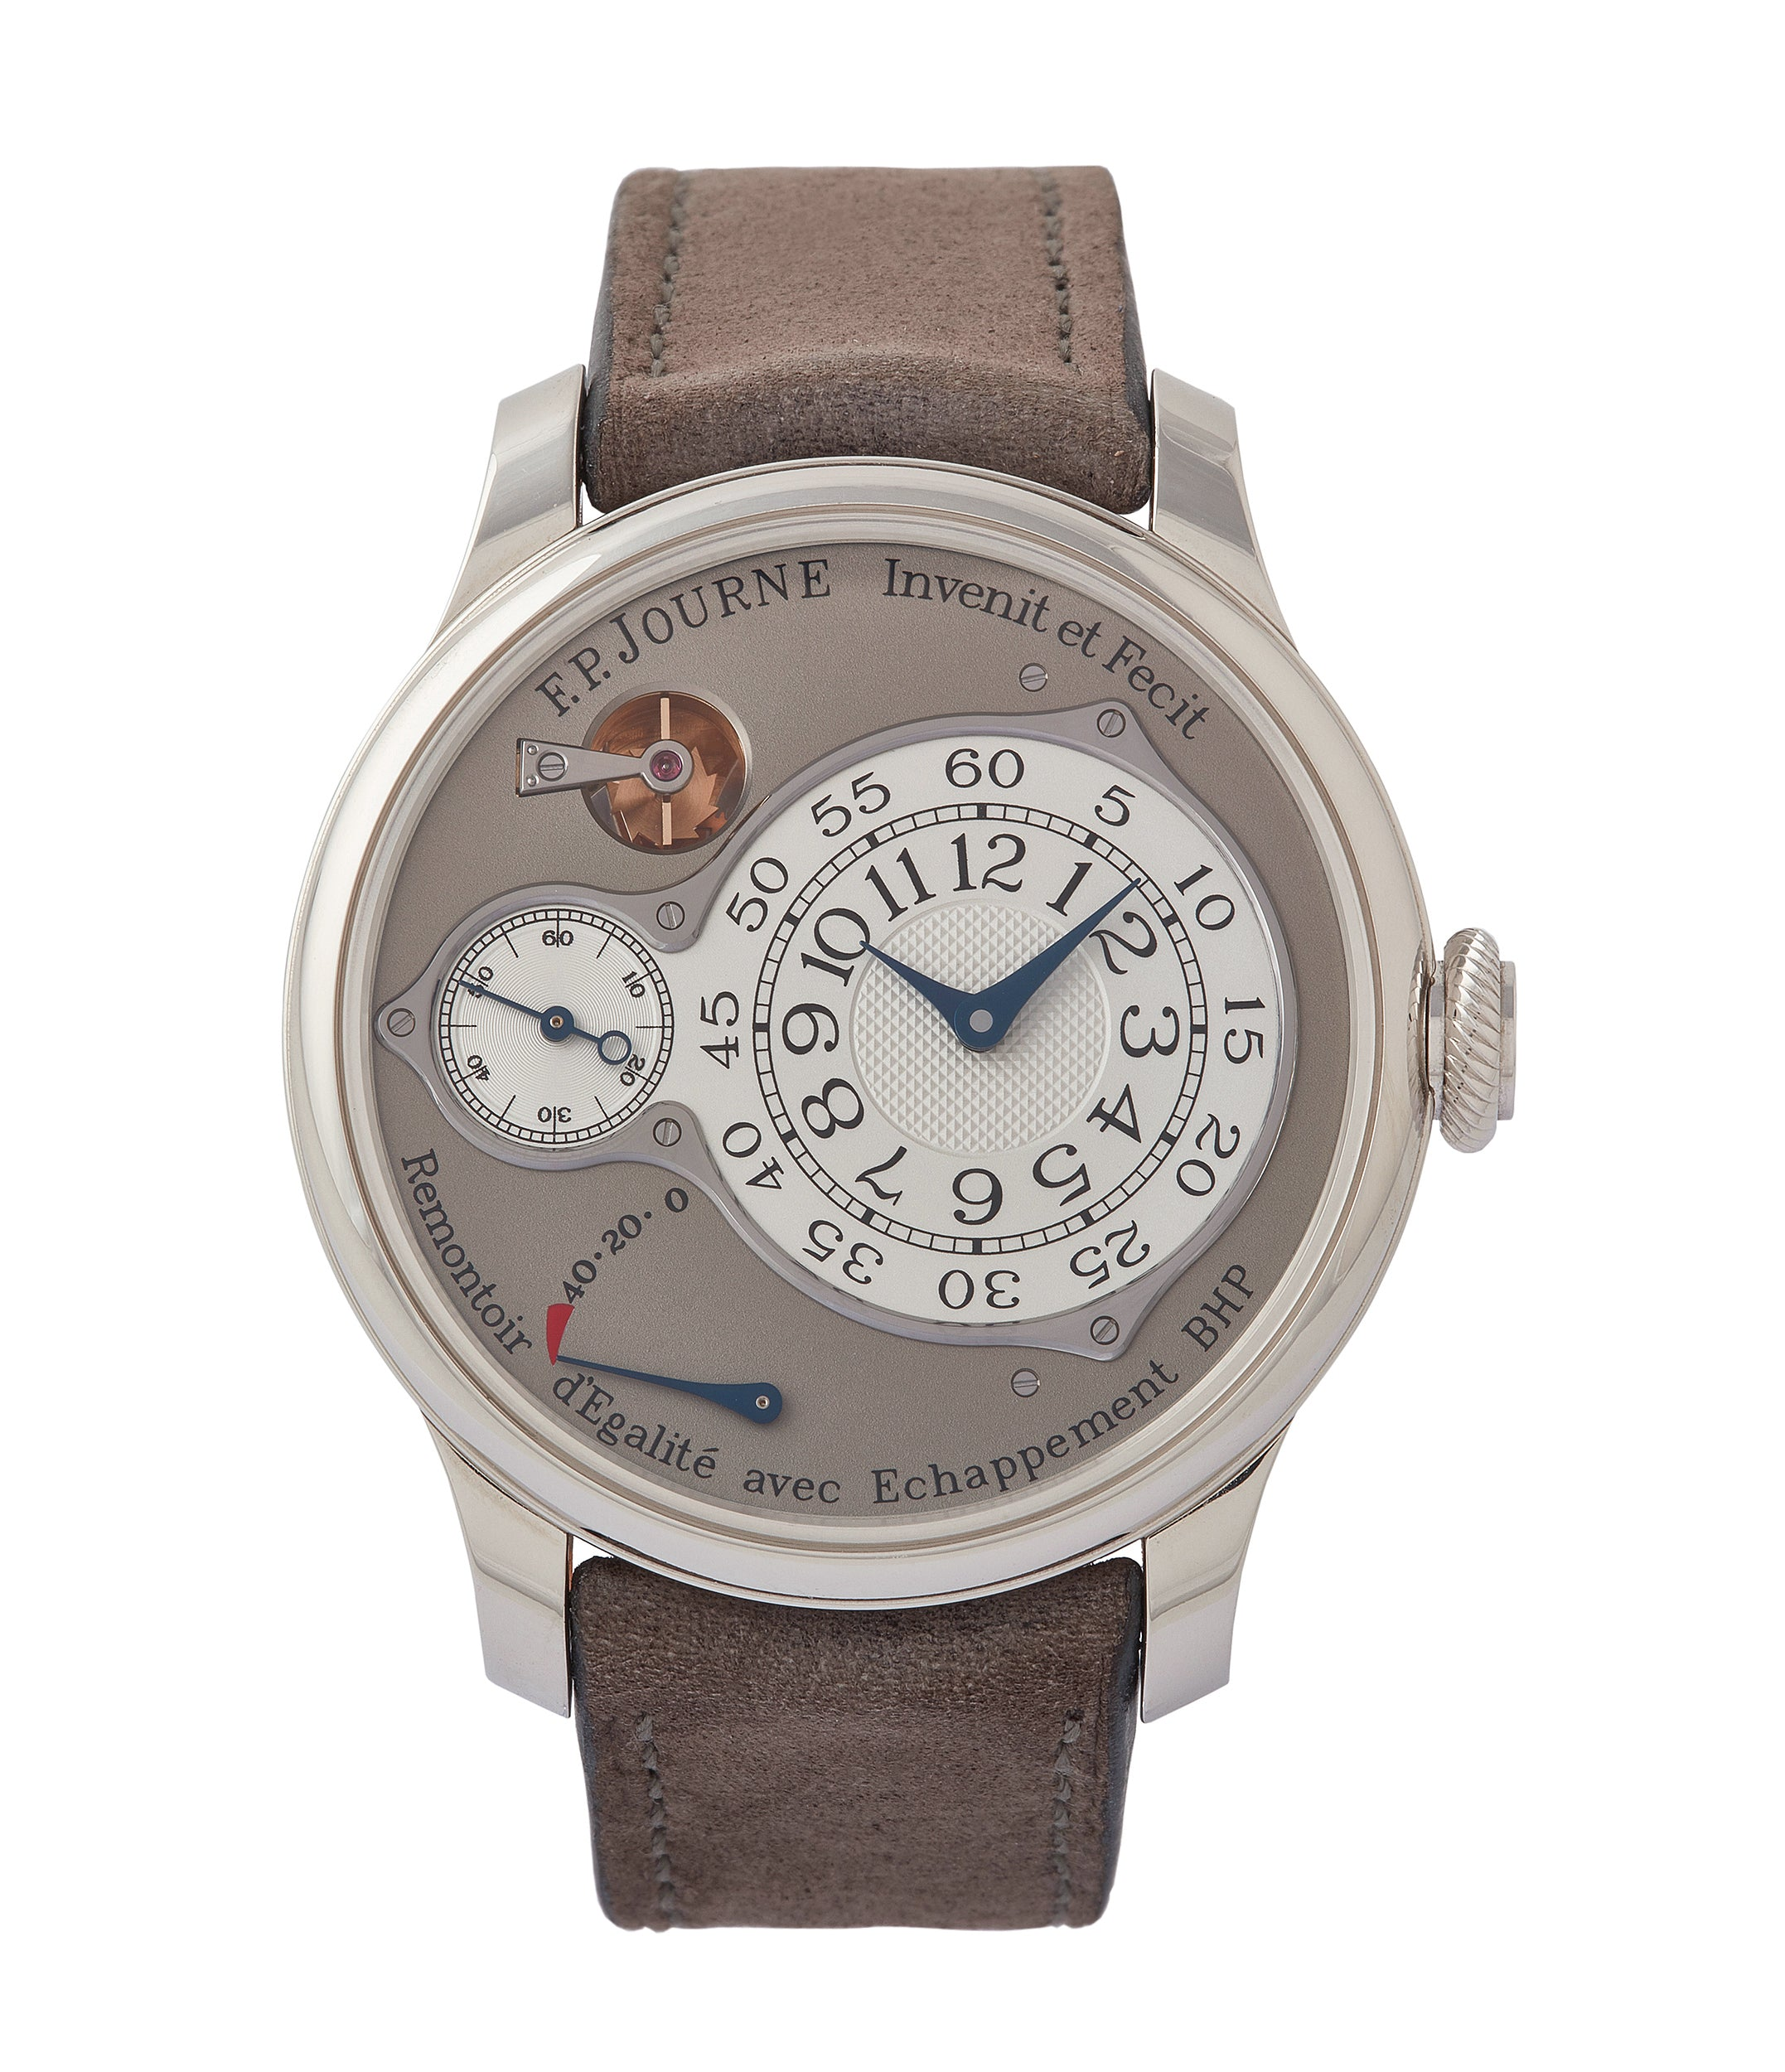 buy F. P. Journe Chronometre Optimum grey dial time-only dress watch for sale online at A Collected Man London UK specilalist of independent watchmakers